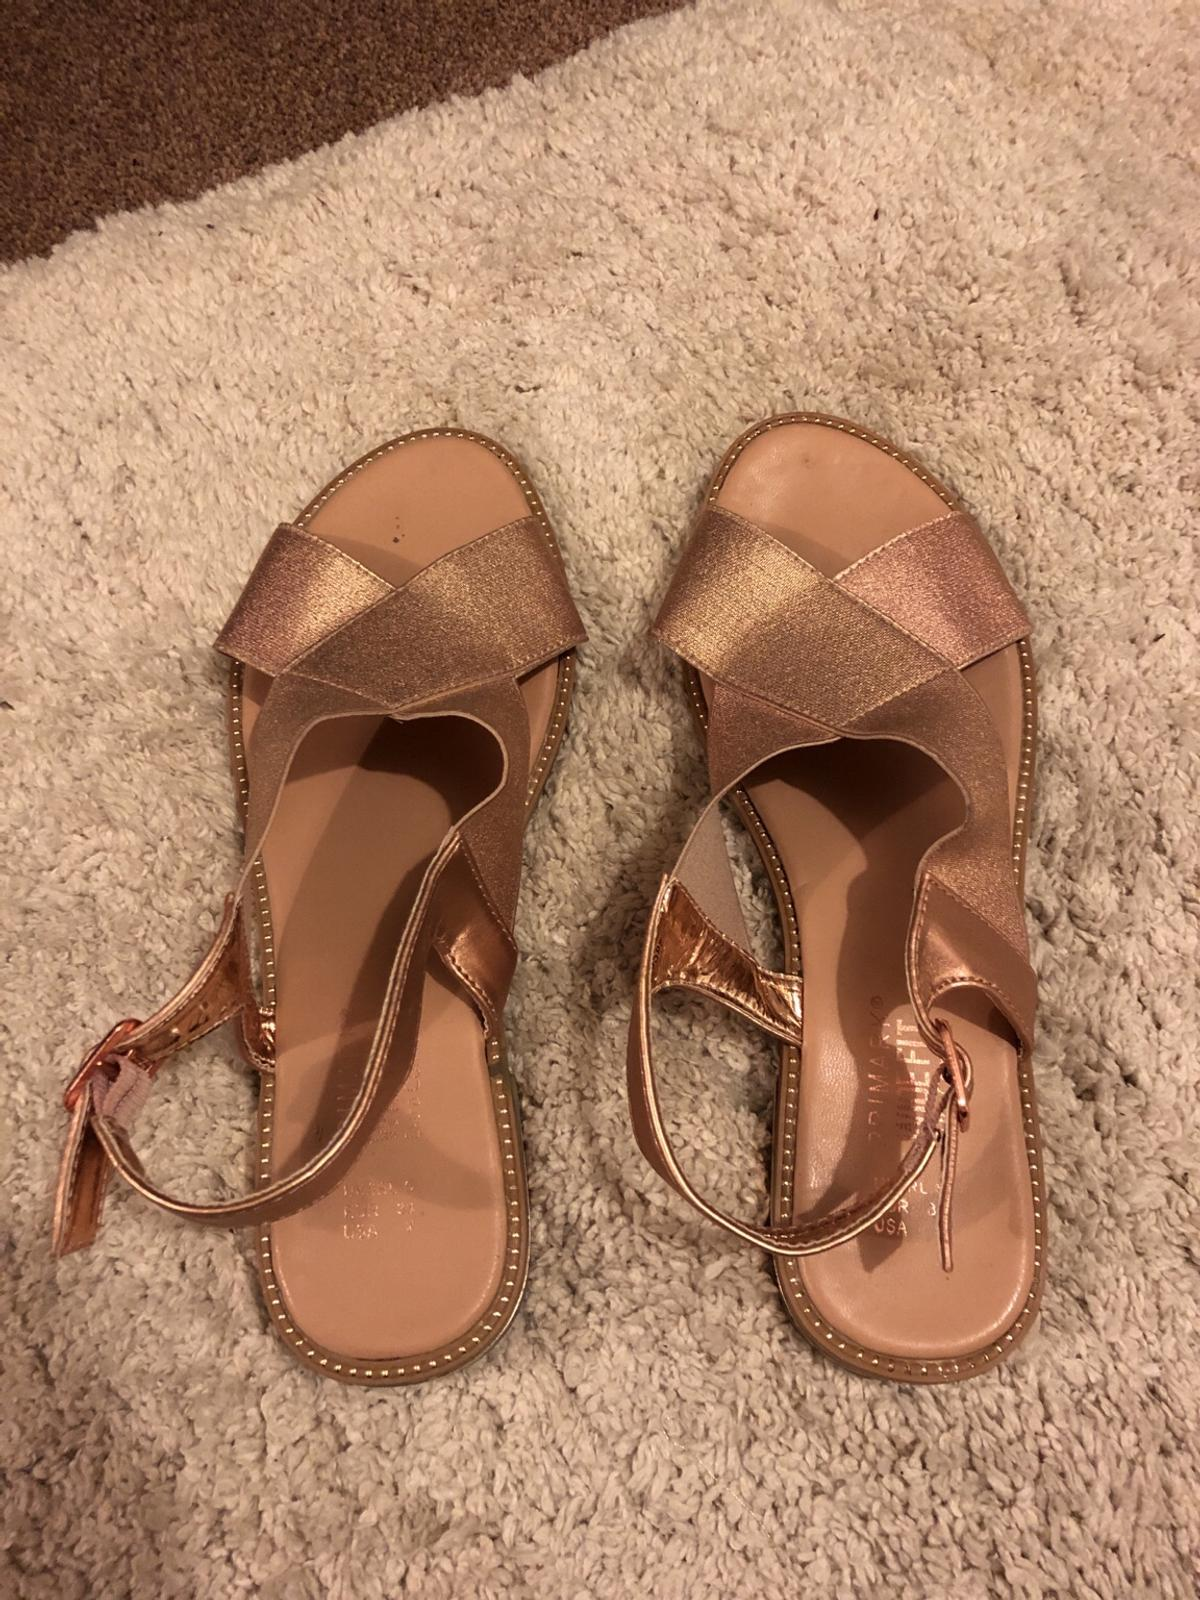 detailing great fit buy online Rose gold sandals size 5 in HP12 Wycombe for £5.00 for sale   Shpock